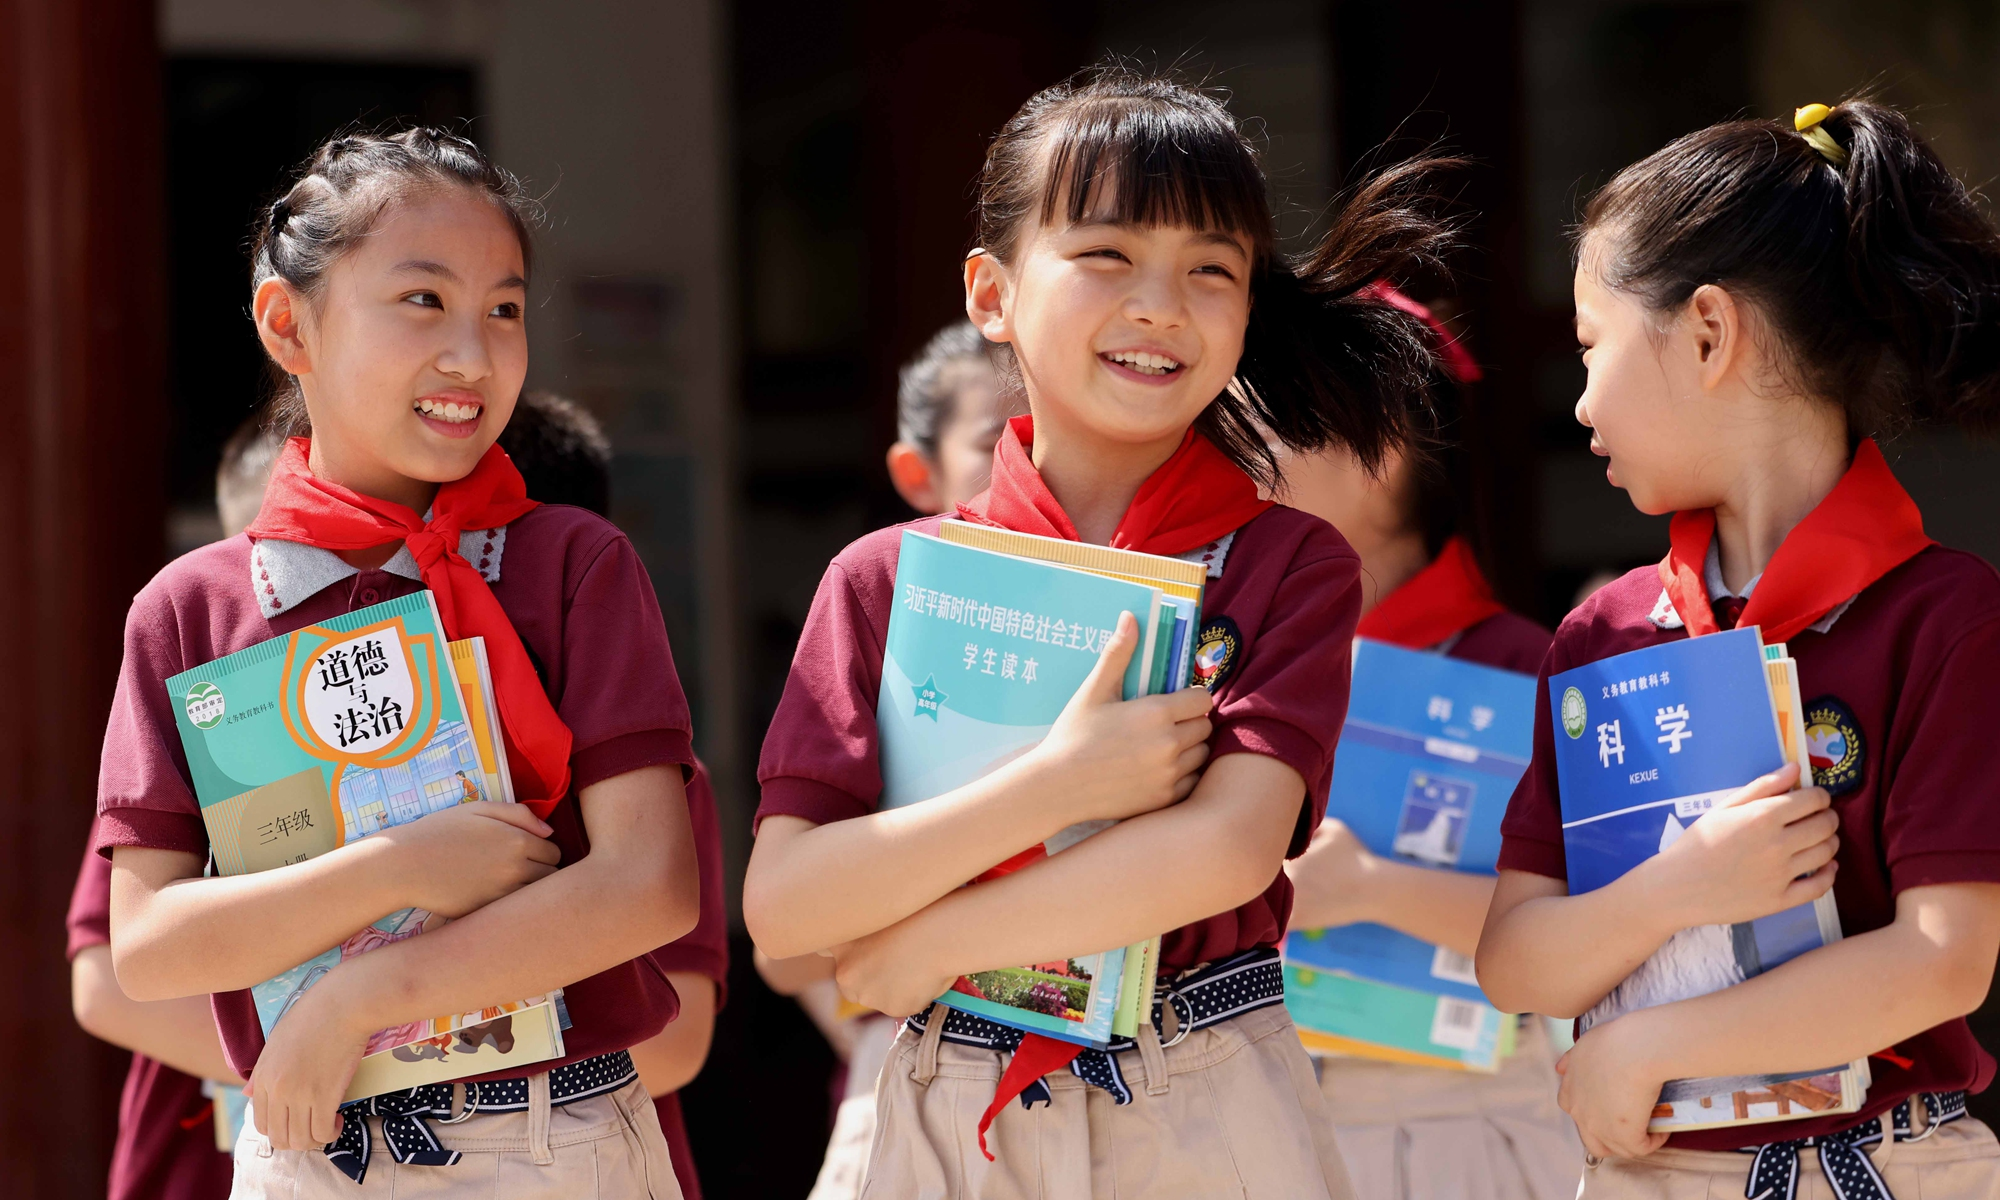 Students run around the Heping Primary School in Yaohai district of Hefei, East China's Anhui Province on Monday, holding new textbooks they have just received. Schools in China will begin the new semester on Wednesday. Photo: IC